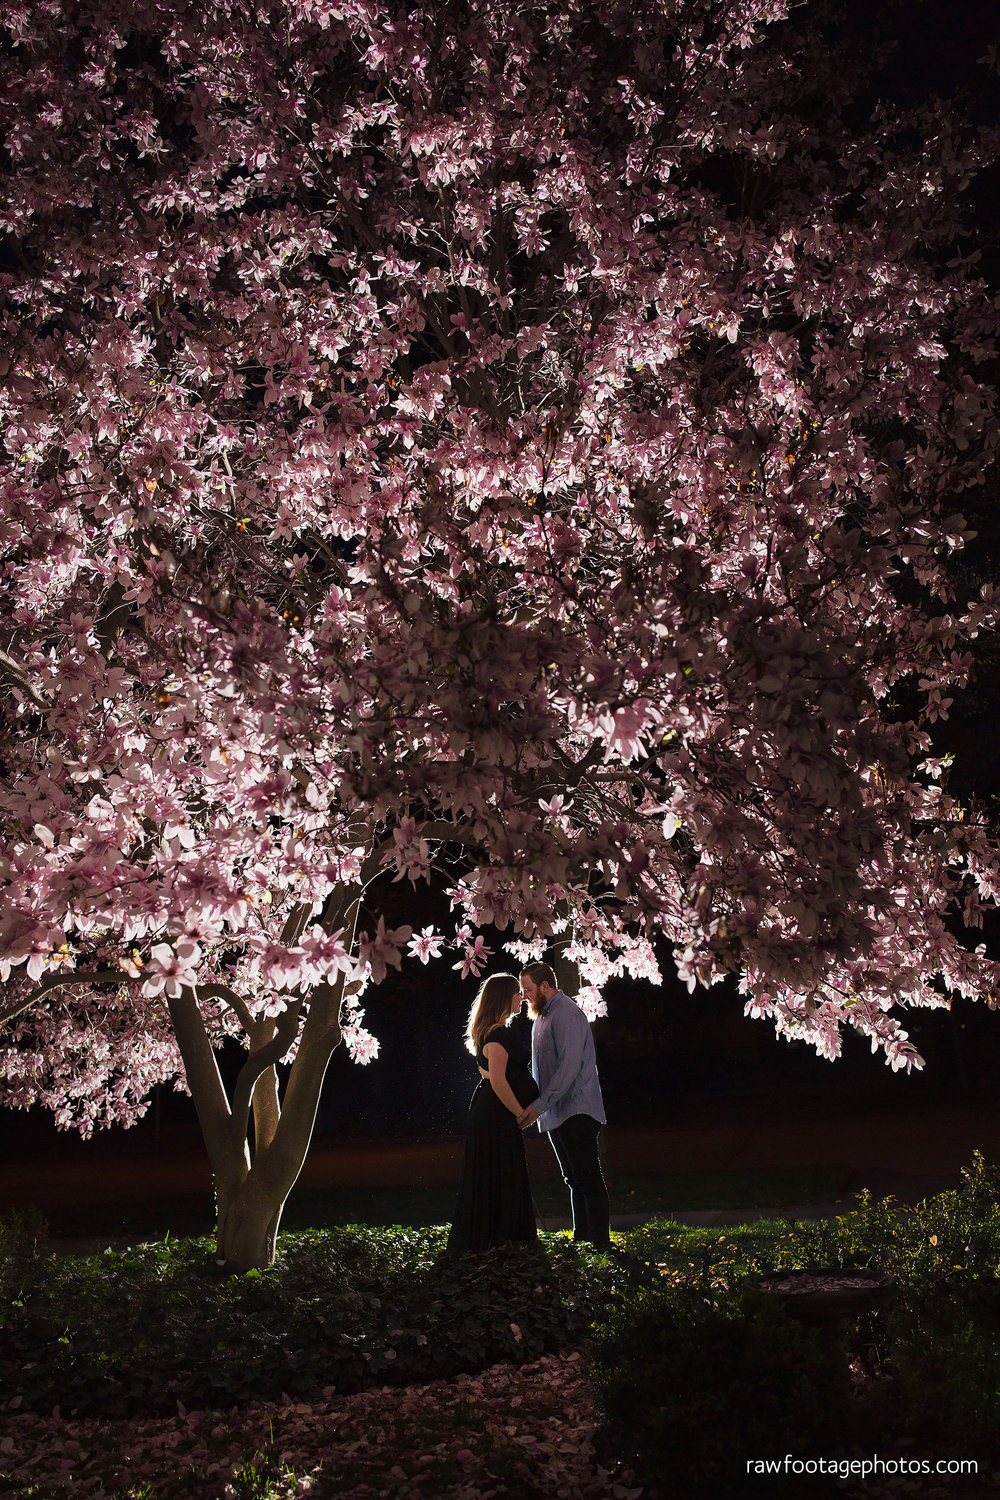 london_ontario_photographer-maternity_session-magnolia_blossoms-magnolia_tree-night_shot-lifestyle_photography-raw_footage_photography008.jpg